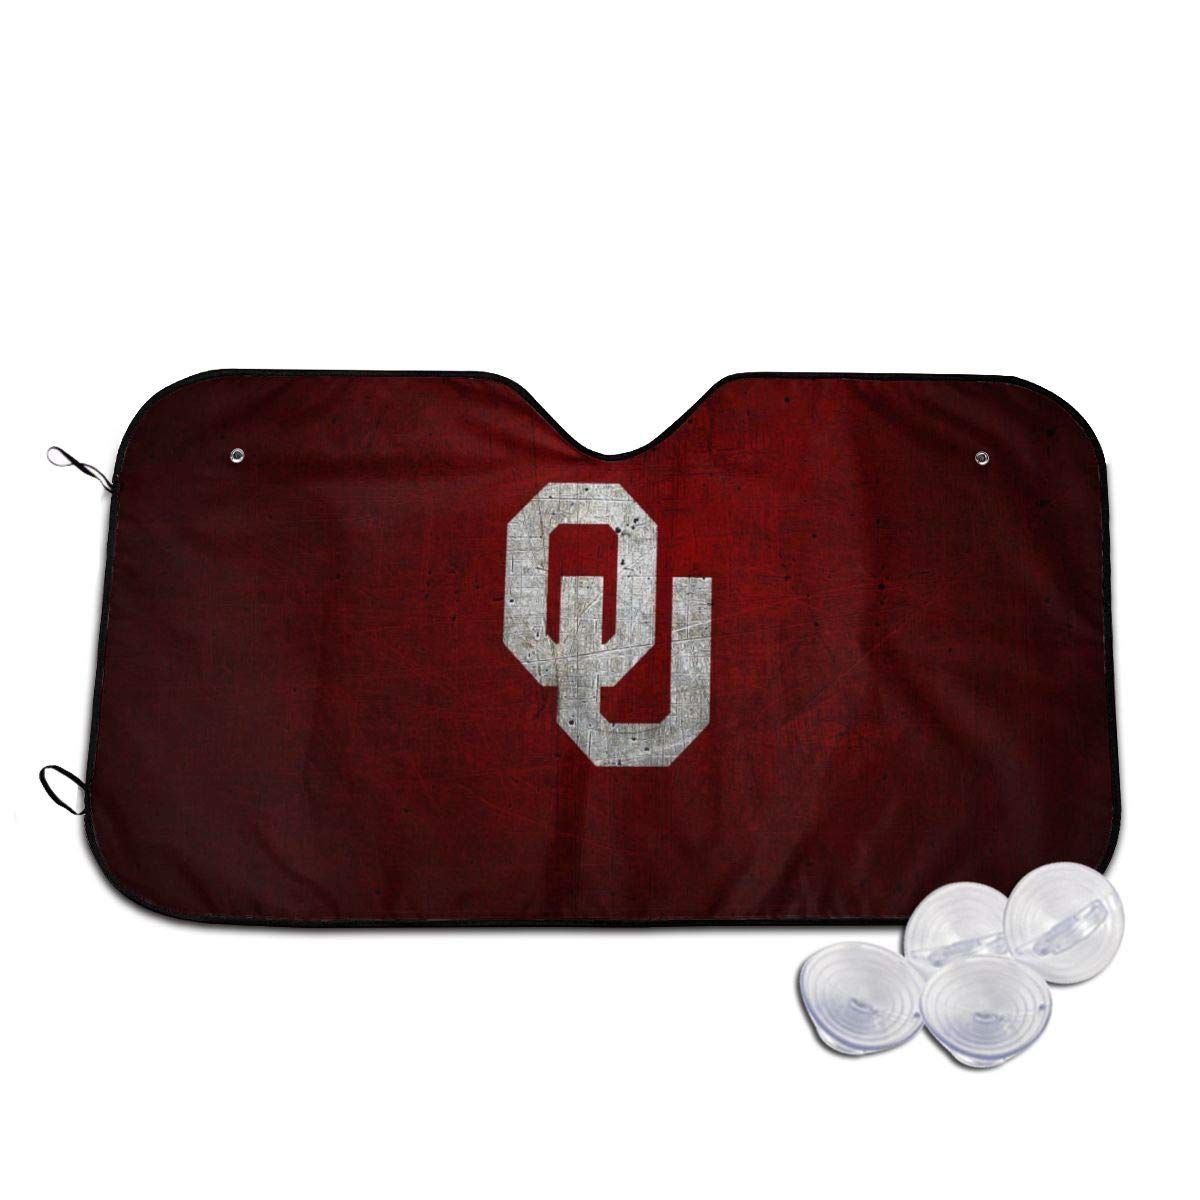 Okla&Homa Sooners Windshield Sun Shade for Trucks Cars Sunshade Visor Front Window SUV Car Truck Front Shield Reflector Blocking Screen Cover